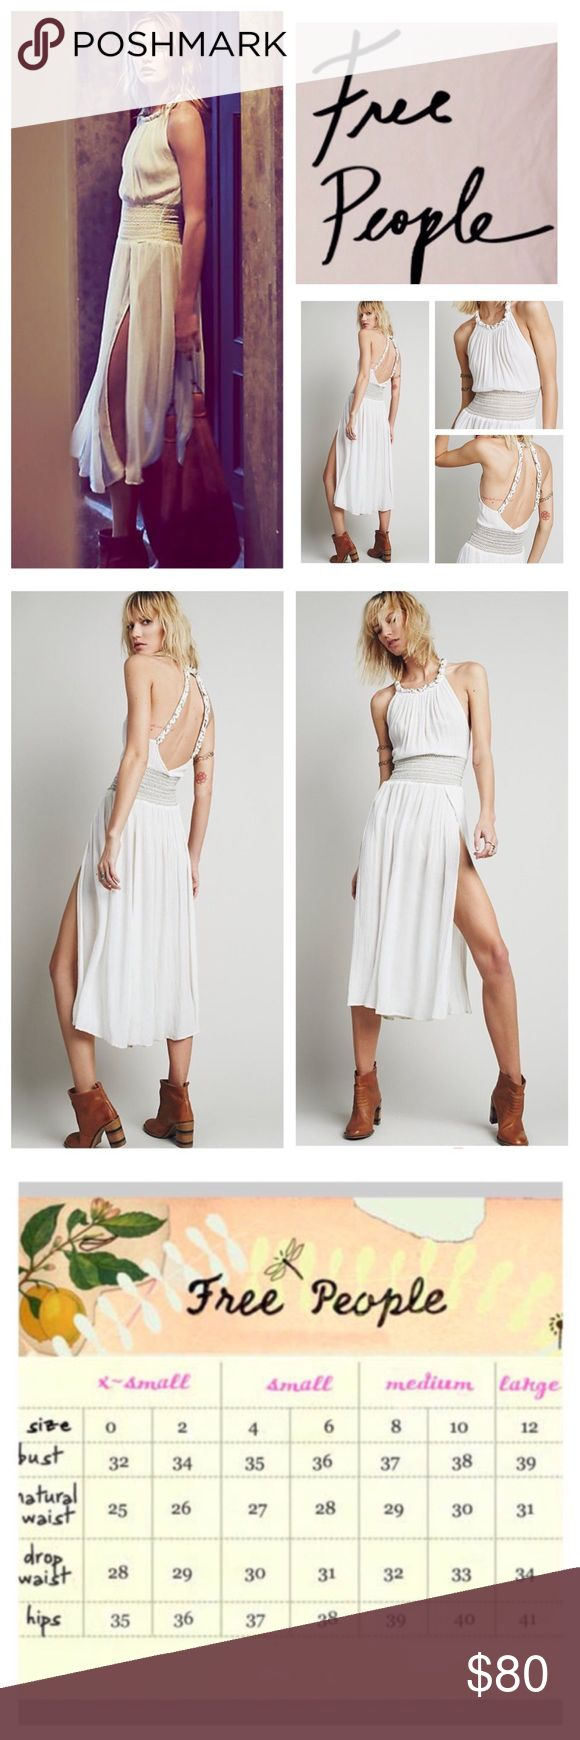 """🆕Free People The Definition Of Sexy Dress.  NWOT. 🆕Free People The Definition Of Sexy Dress, 100% rayon, machine washable, 15"""" armpit to armpit (30"""" all around), 25"""" elastic waistband stretches up to 32"""", 43"""" length, 25"""" front slits, made from sheer and gauzy Endless Summer fabric, this high-neck dress features braided straps and low open back, smocked elastic waistband with metallic accent and high slits on skirt complete the look, measurements are approx.  New without tag, never worn…"""